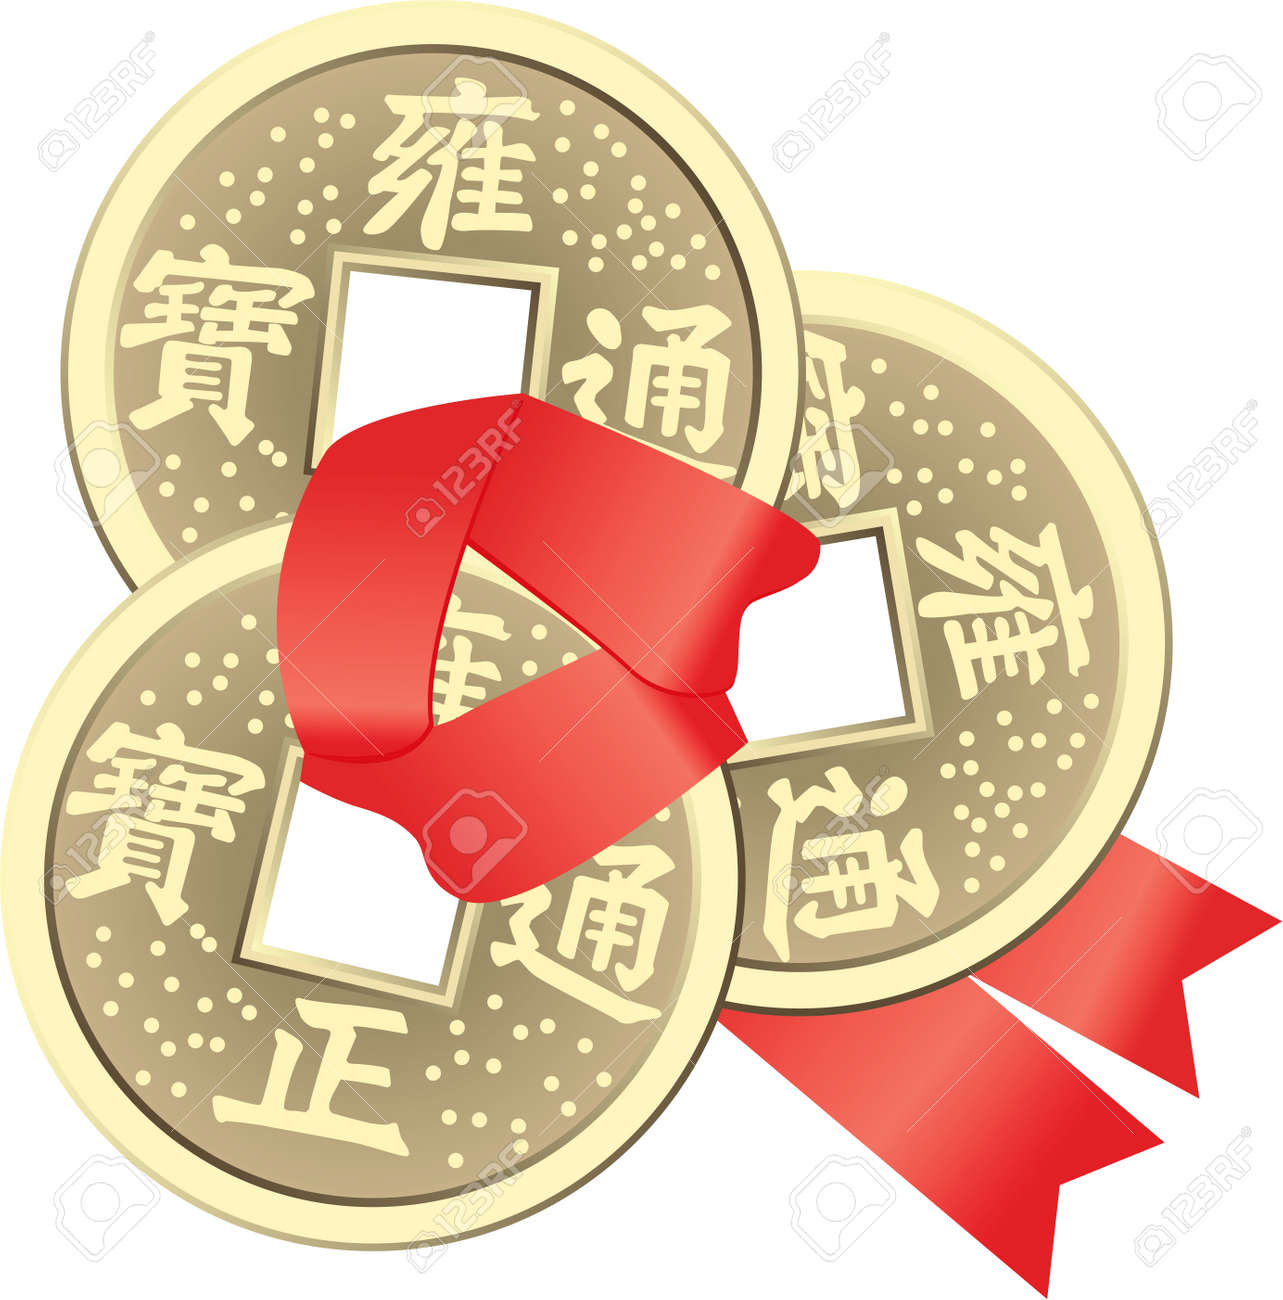 Chinese feng shui coins for wealth and success royalty free chinese feng shui coins for wealth and success stock vector 63816975 biocorpaavc Images